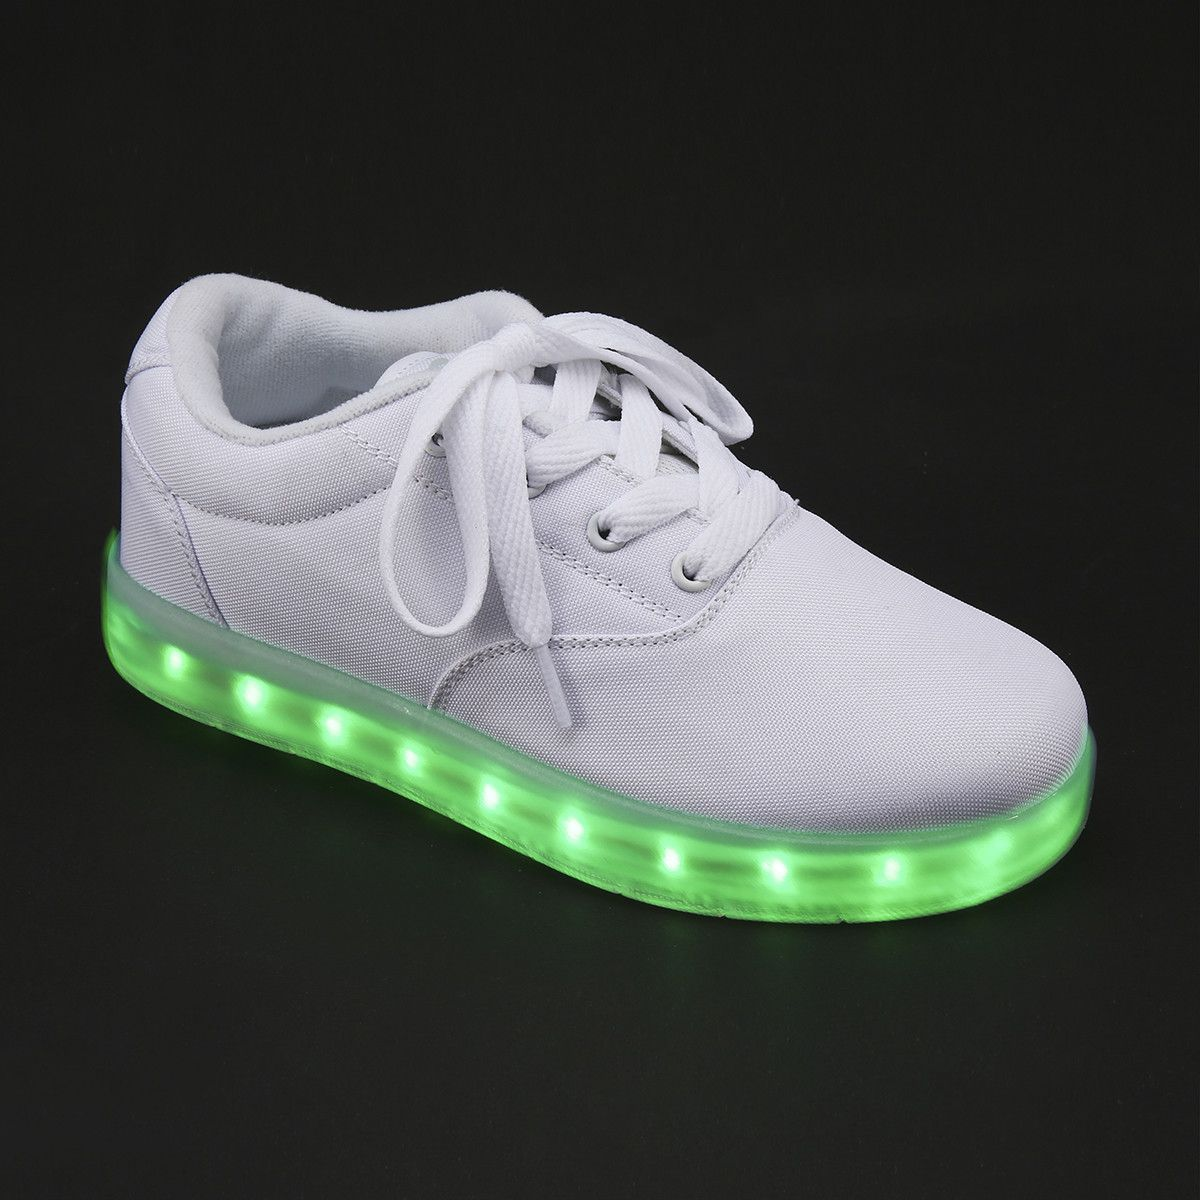 Learned Men Led Luminous Shoes Nice New Fashion Men Led Shoes Basket Shoes Led Shoes For Adults Men Led Pop Shoes Men's Casual Shoes